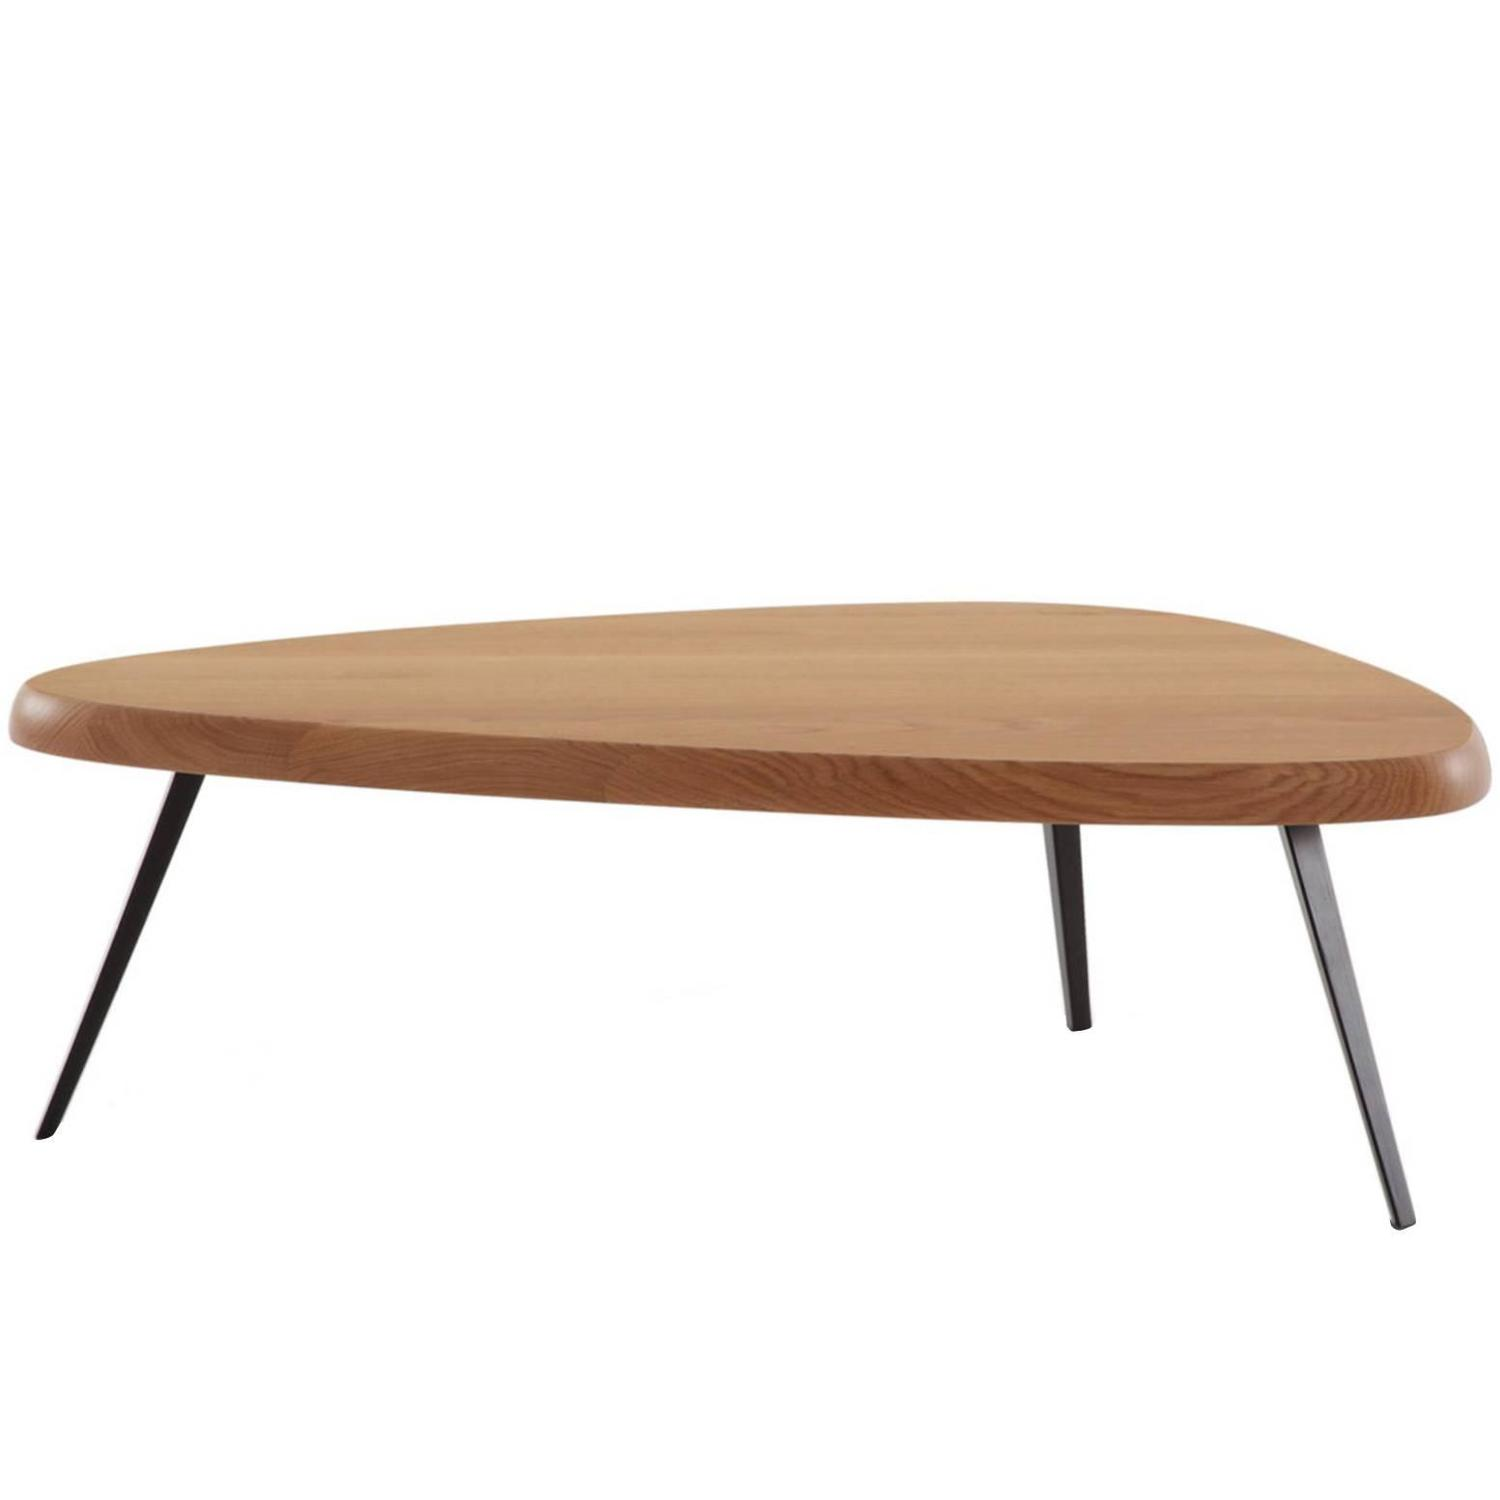 Low Coffee Table By Charlotte Perriand At 1stdibs